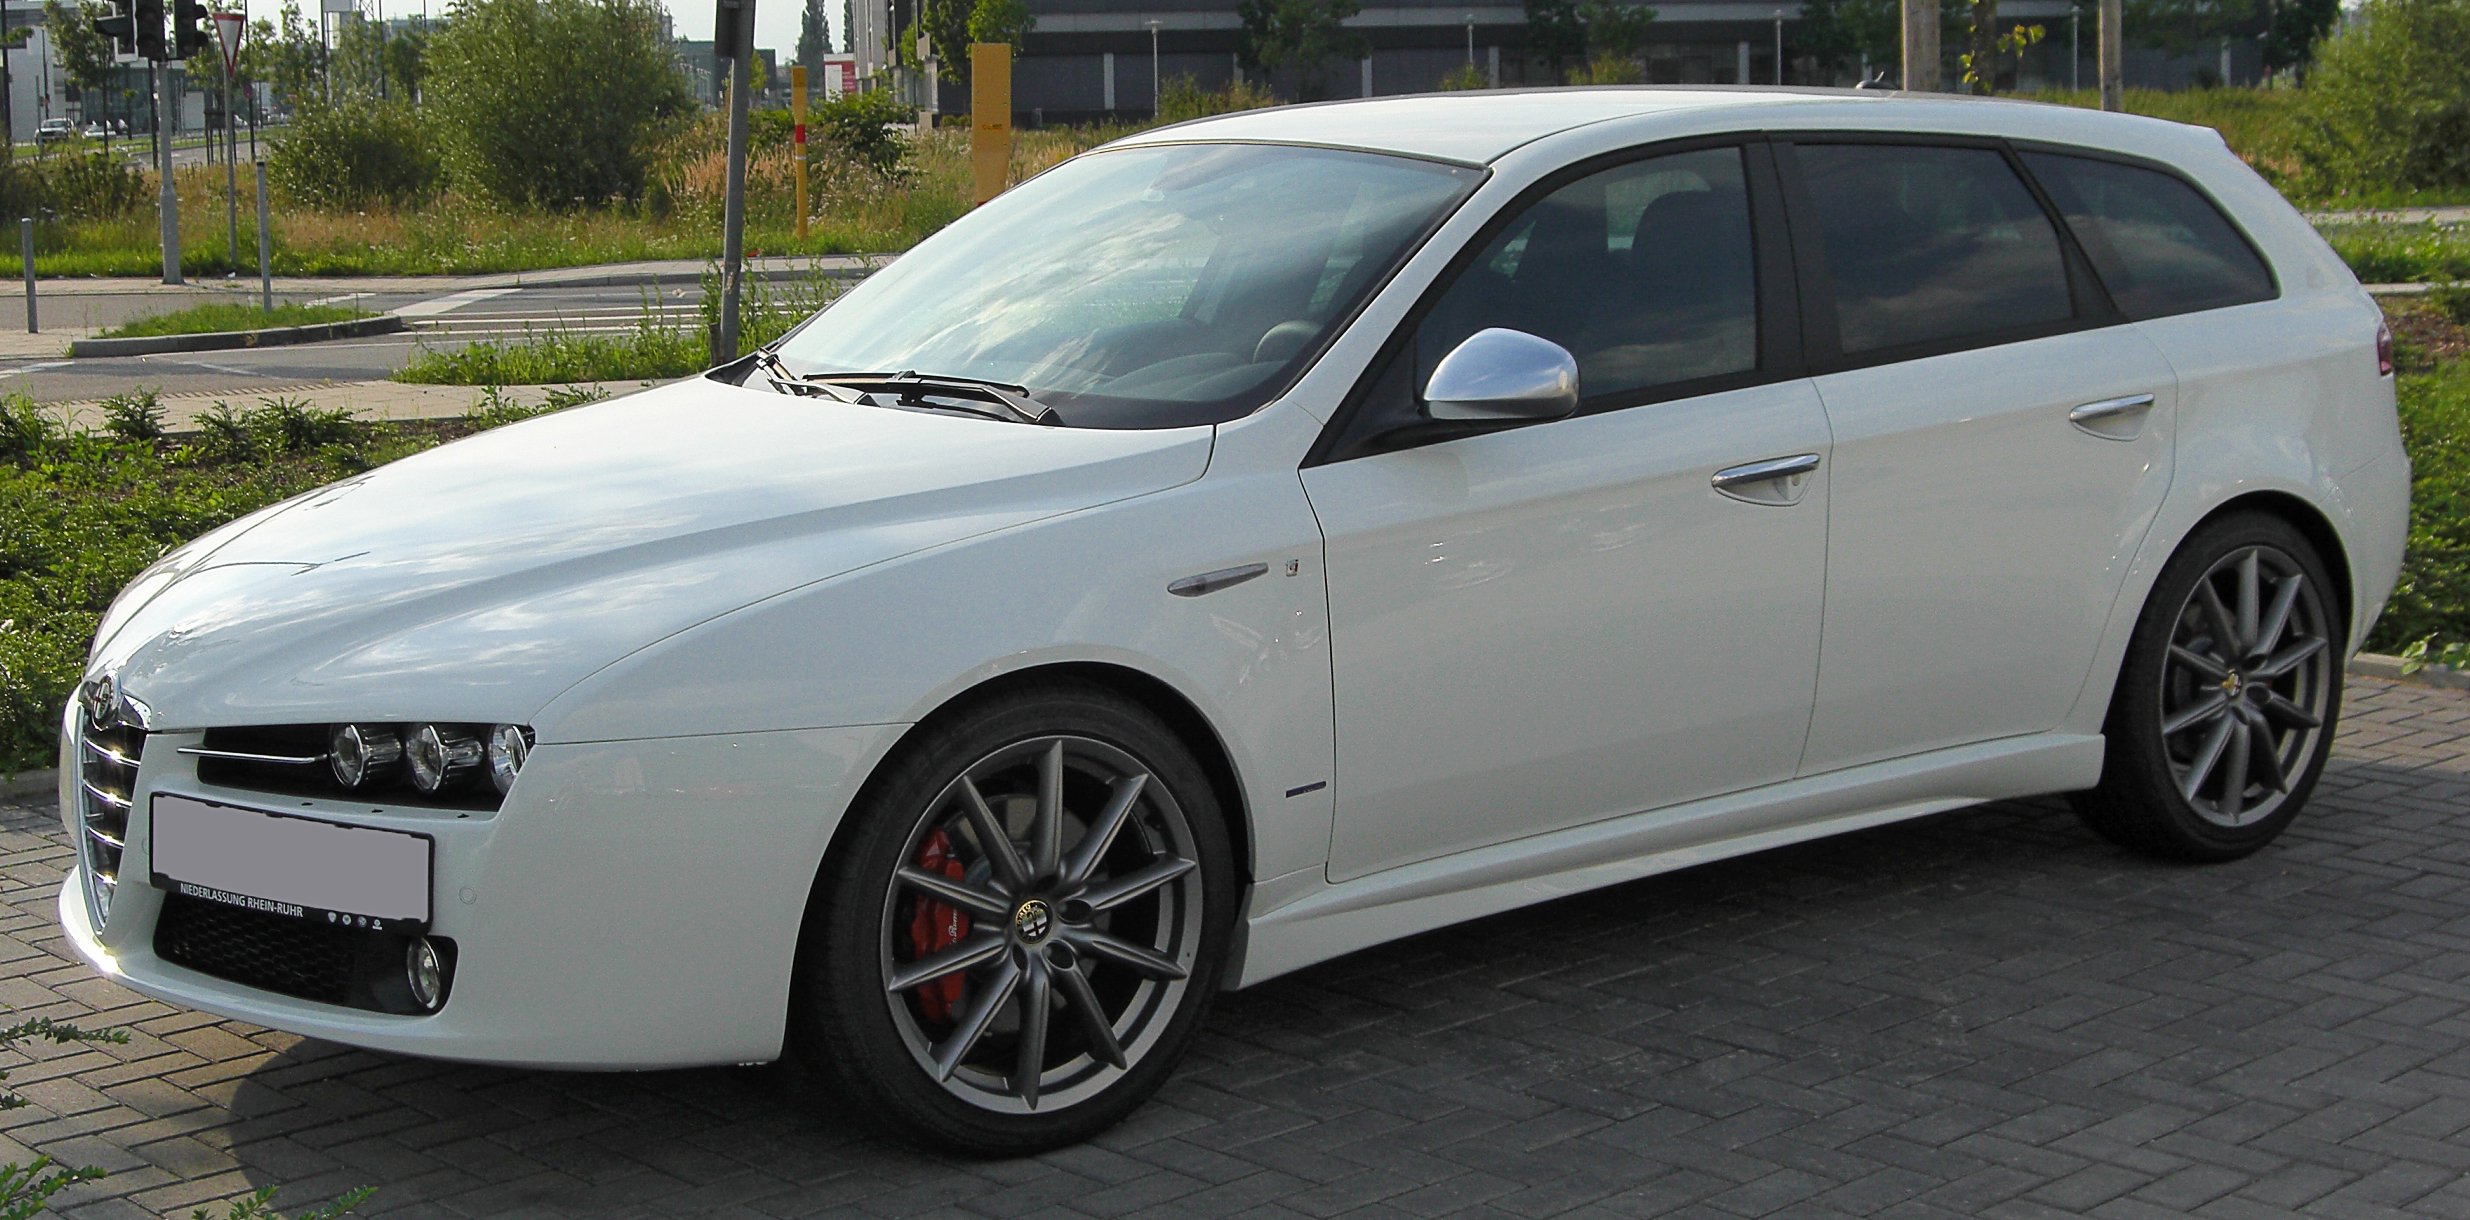 file alfa romeo 159 ti sportwagon front wikimedia commons. Black Bedroom Furniture Sets. Home Design Ideas